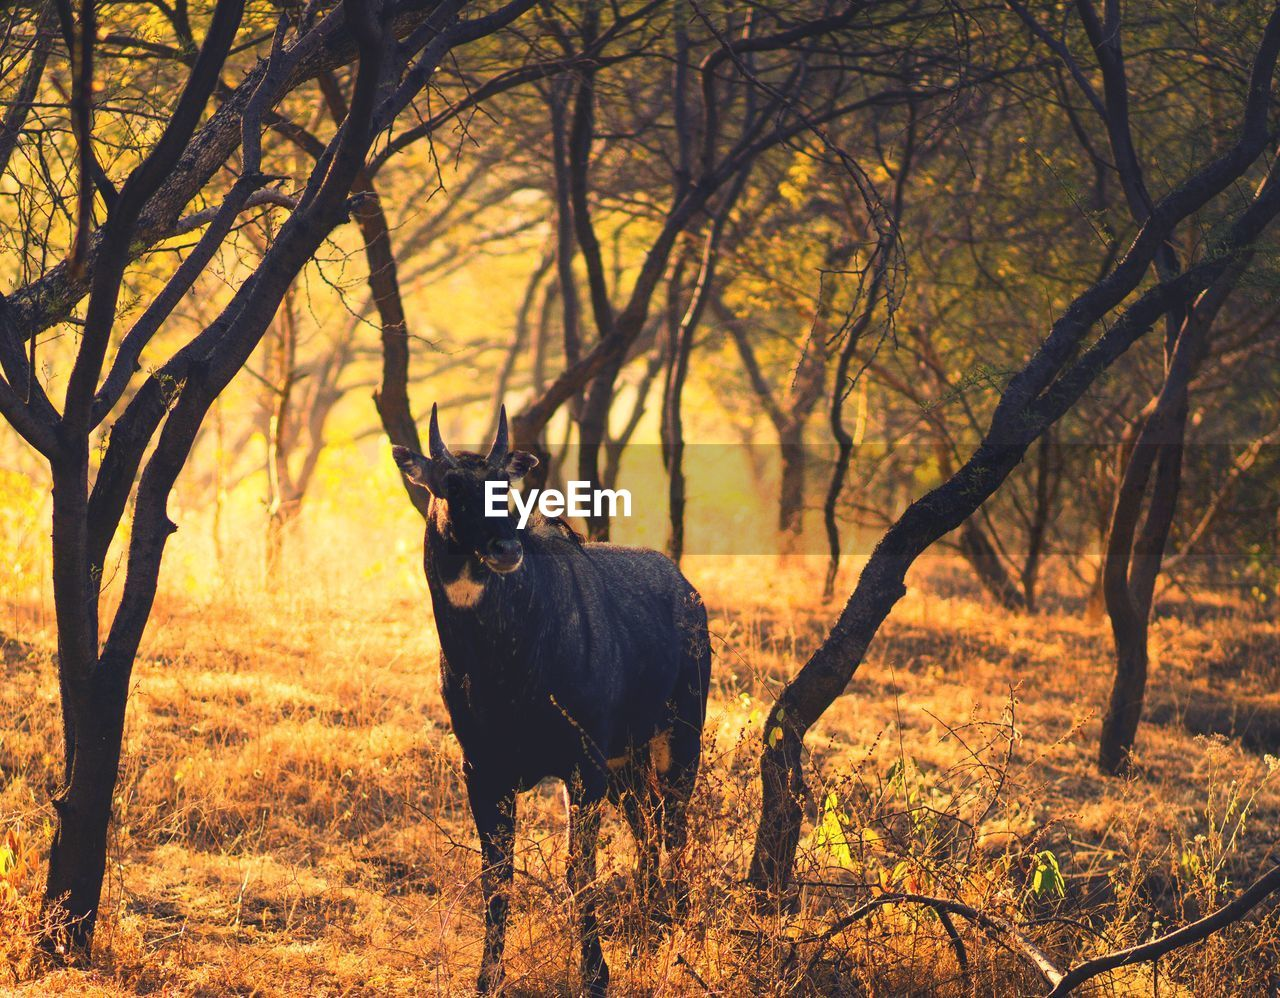 tree, animal themes, animal, plant, mammal, one animal, animal wildlife, vertebrate, land, domestic animals, animals in the wild, nature, no people, standing, branch, field, forest, herbivorous, outdoors, bare tree